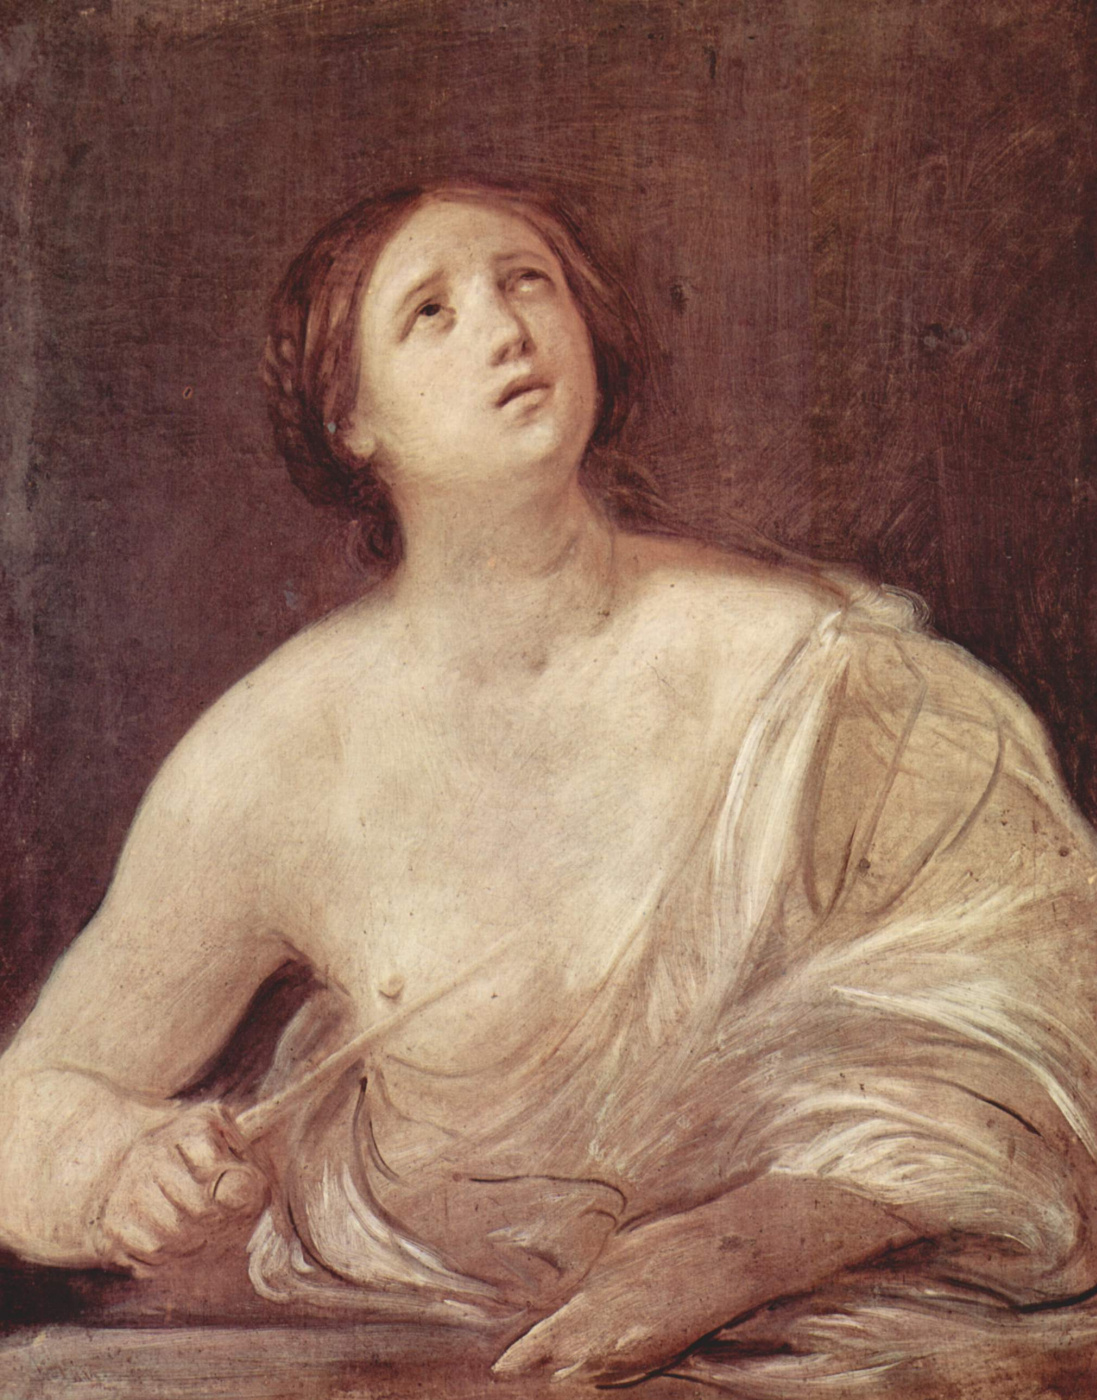 Guido Reni. The Death Of Lucretia